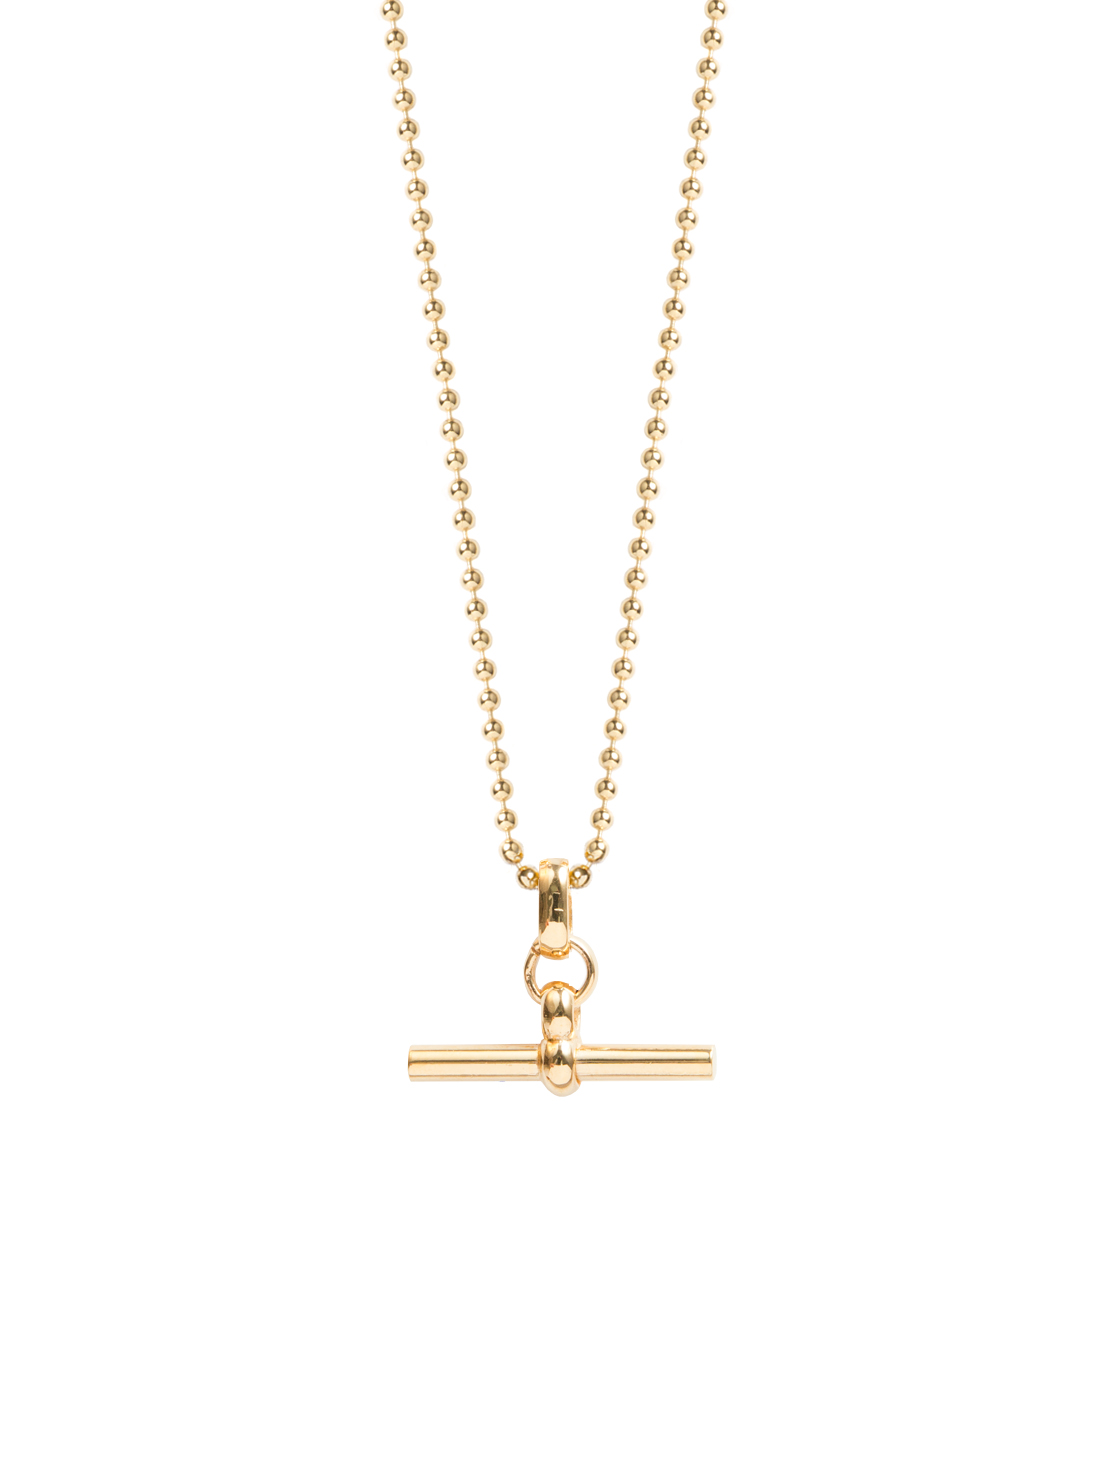 famshin cross in on item religious necklace alibaba gold jewelry tomtosh pendant aliexpress small chain from summer com necklaces accessories